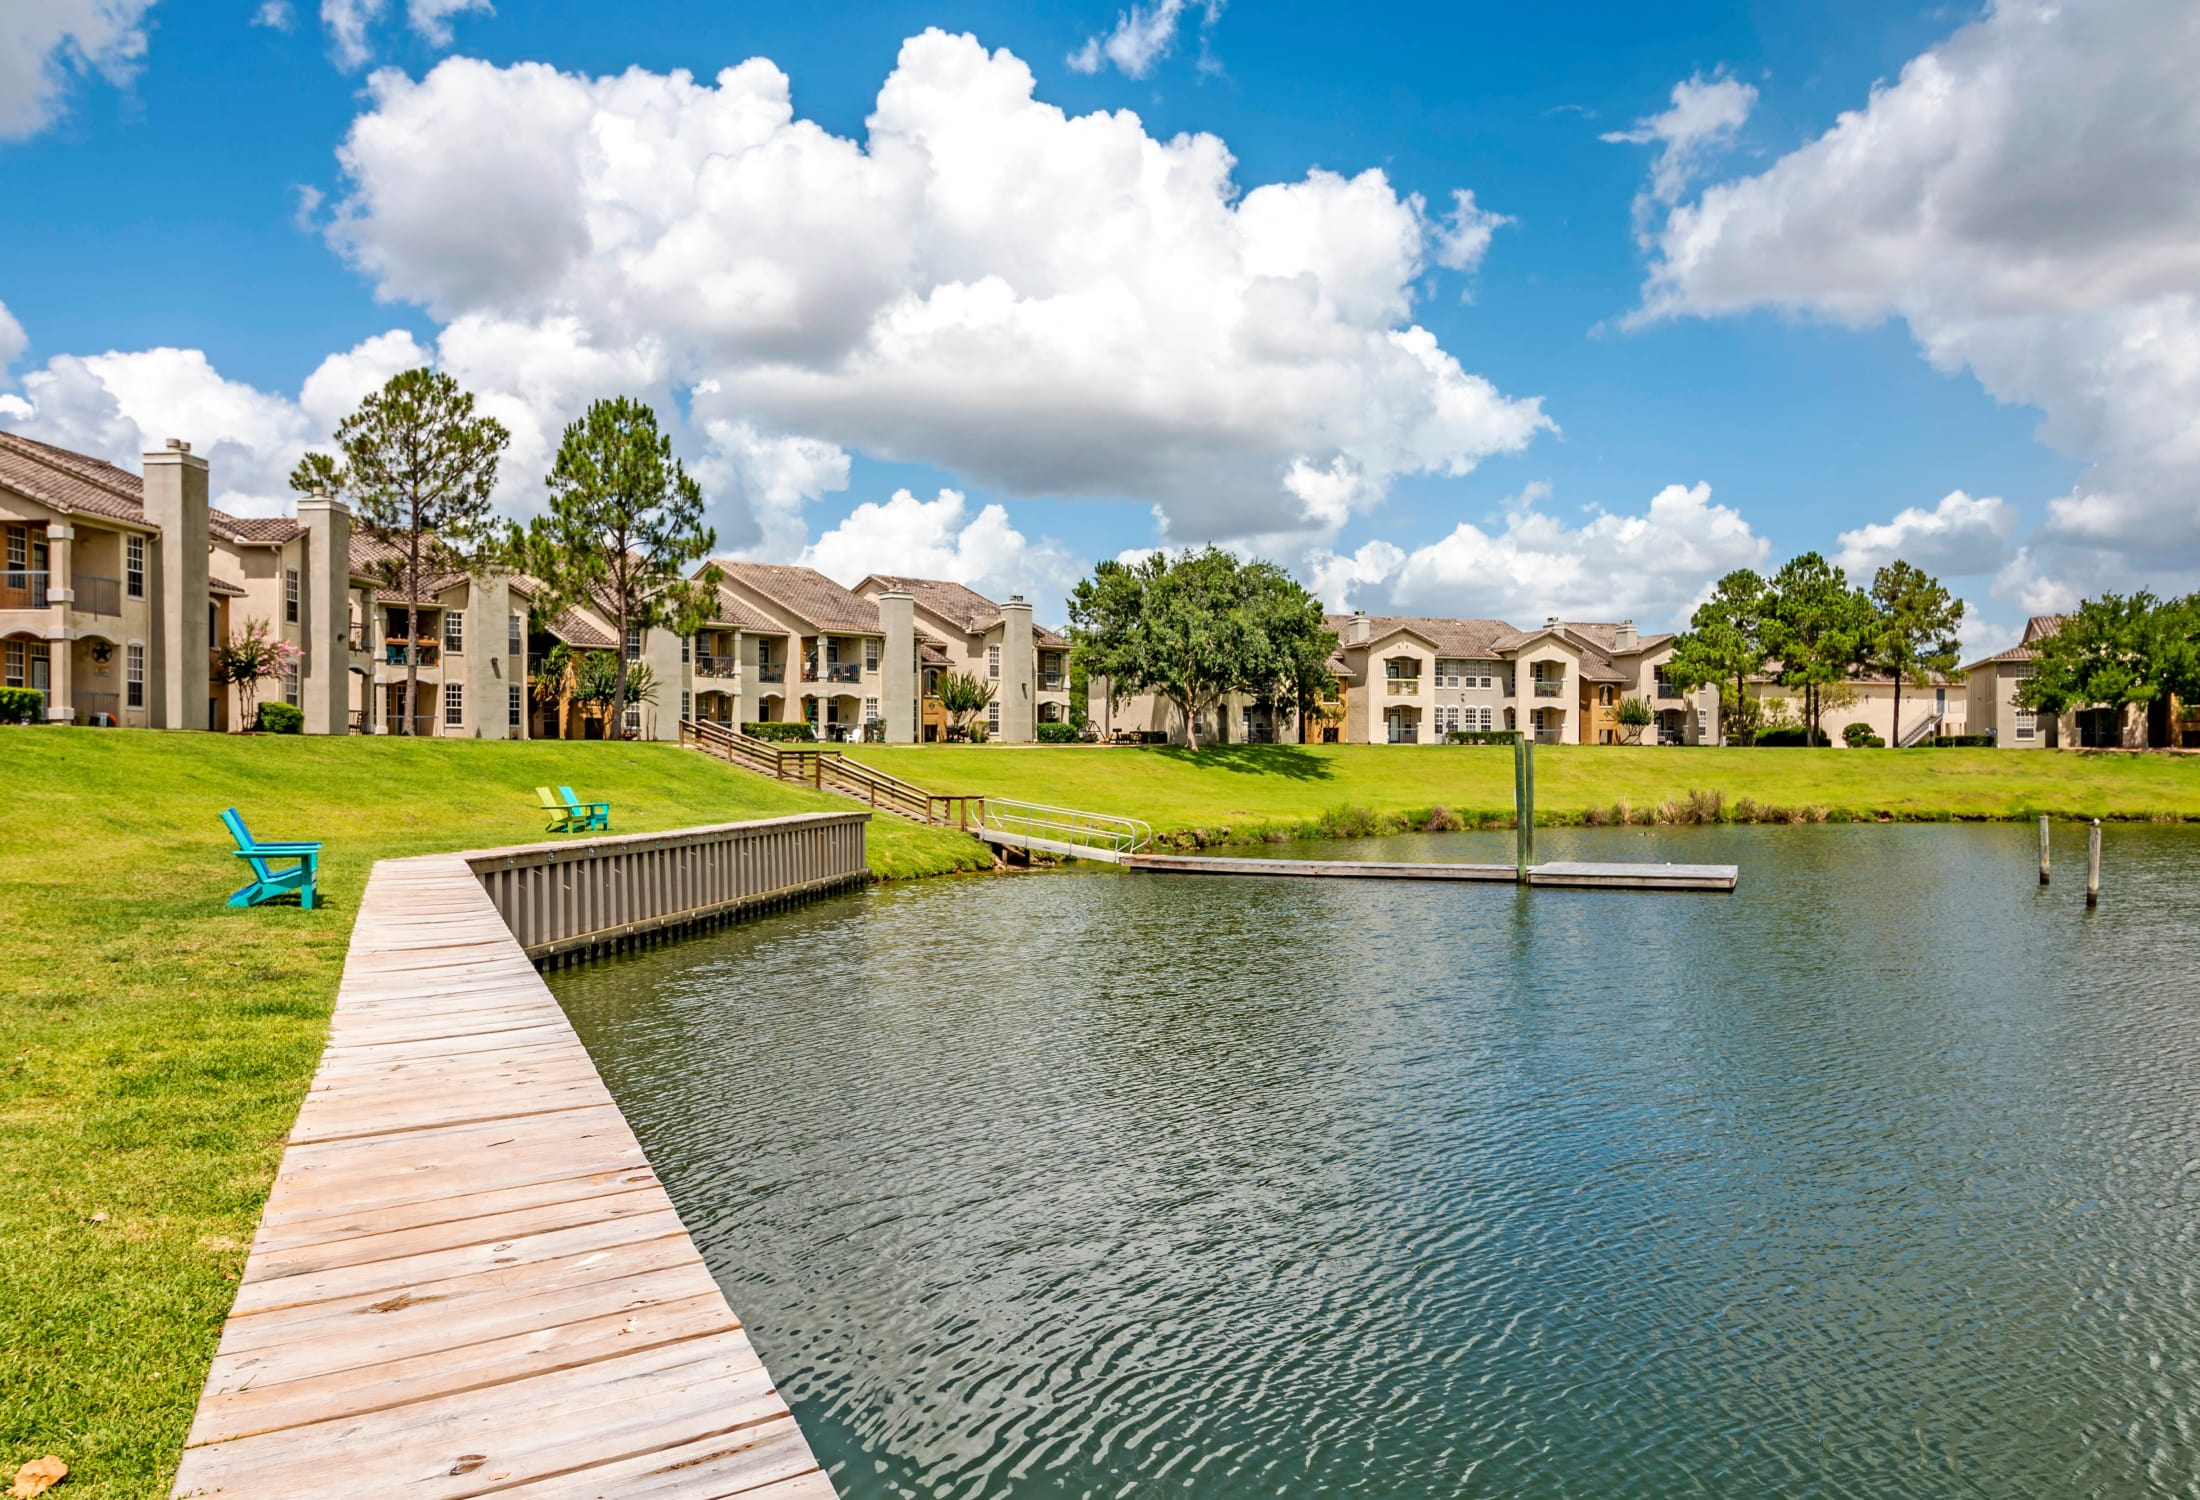 League City, TX Apartments for Rent | Signature Point Apartments on map of johnston ri, map of kansas city ks, map of lake havasu city az, map of johnson city tn, map of king of prussia pa, map of lewiston me, map of las vegas nv, map of lafayette in, map of long beach ms, map of littleton co, map of jersey city nj, map of laurel md, map of lynnwood wa, map of jefferson city mo, parks league city tx, map of lafayette la, map of kenner la, map of kingston ri, map of junction city ks, map of los lunas nm,